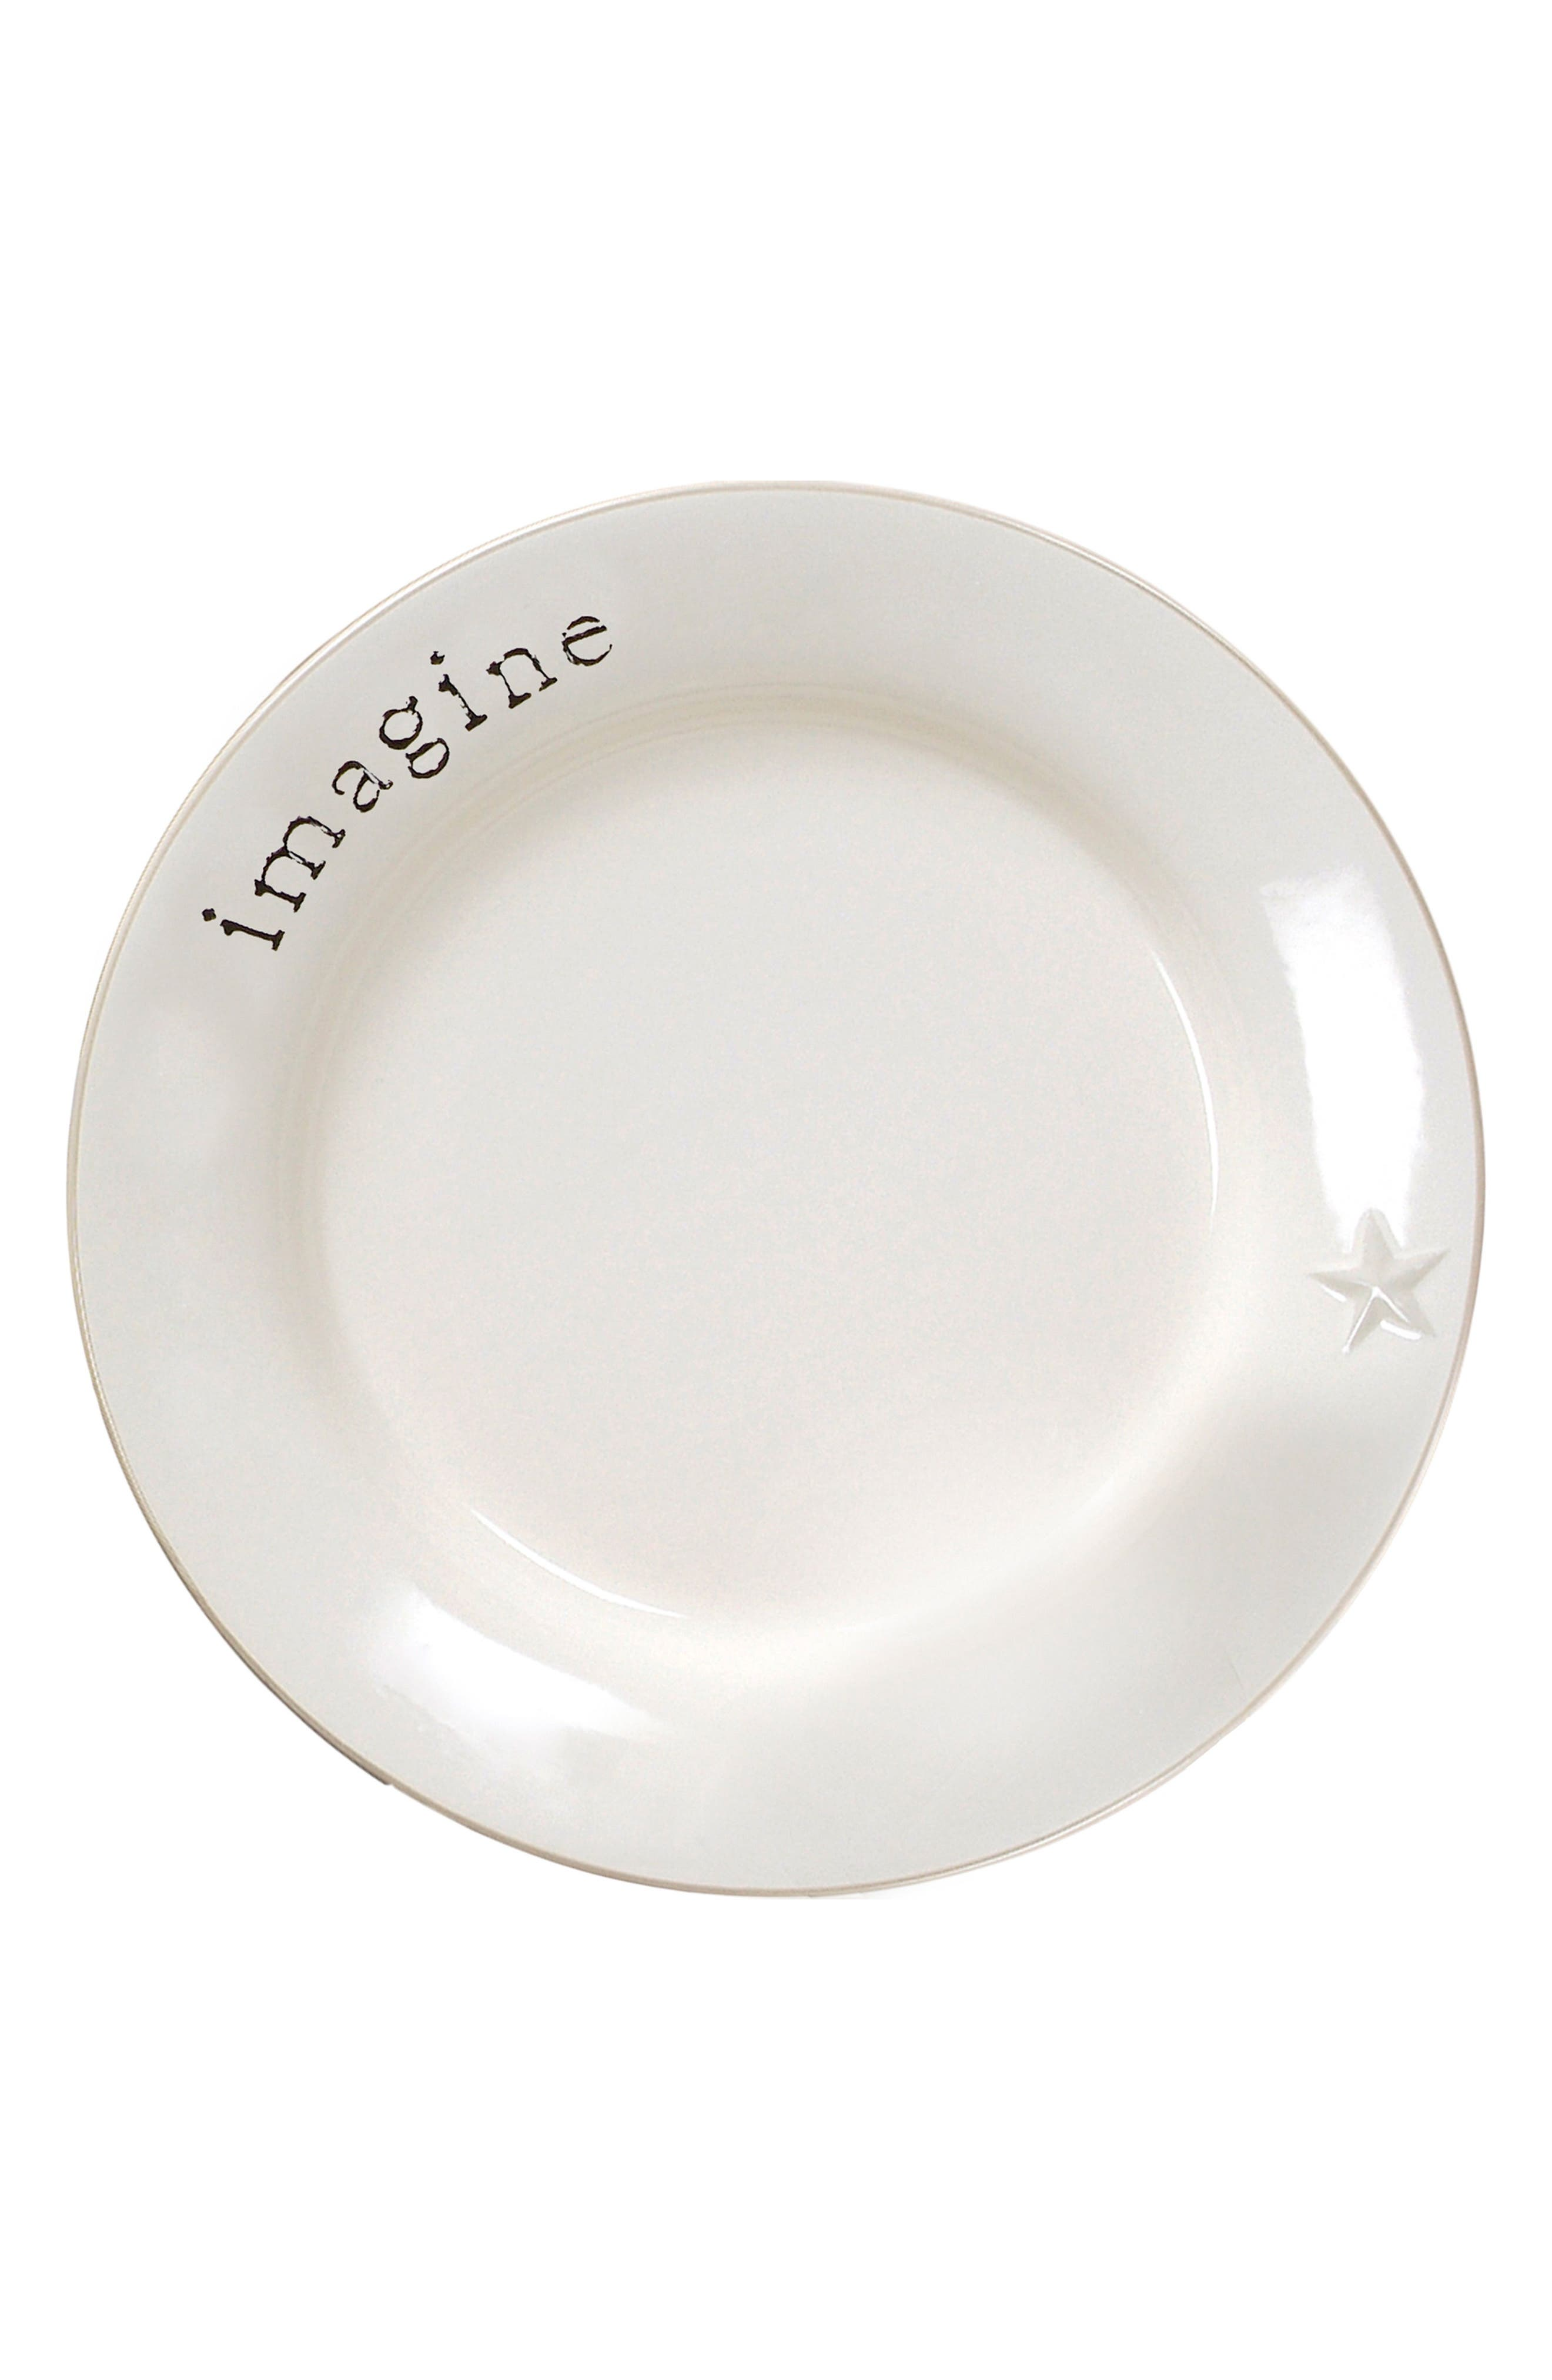 Word Expressions Dinner Plate,                             Main thumbnail 1, color,                             White